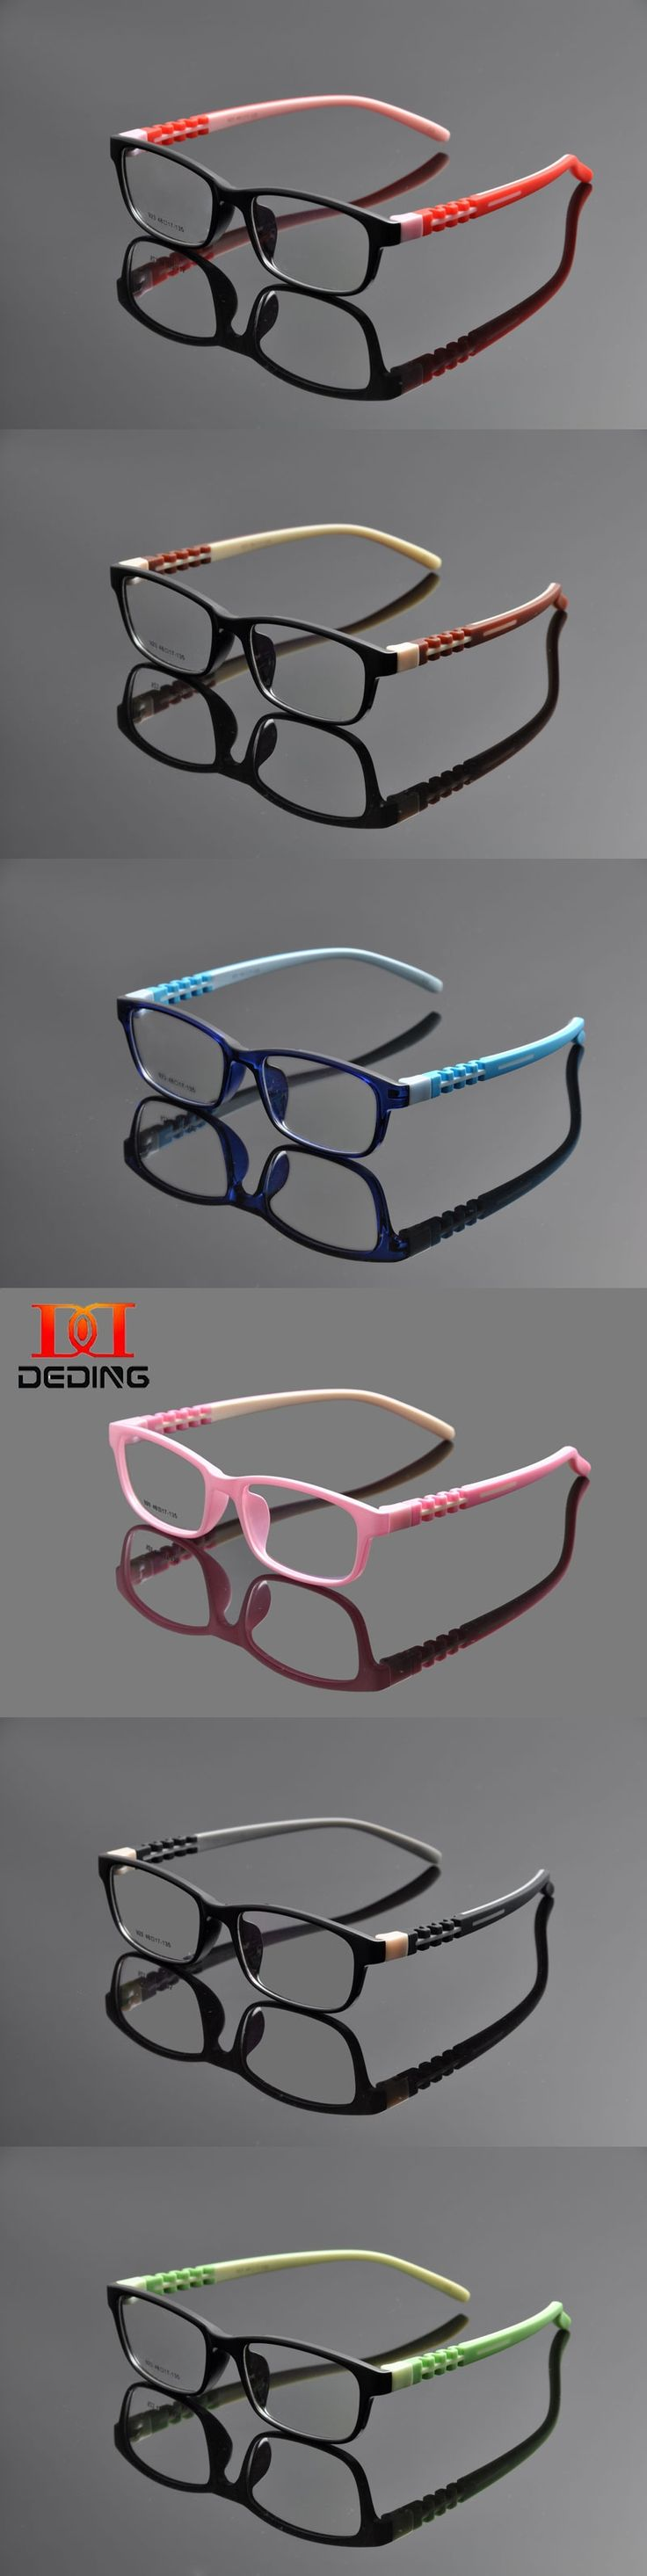 DeDing Fashion Kids Frame,Kids Optical Glasses,Child Frame glasses,oculos infantil,Children Spectacles,Eye glasses kids DD1173